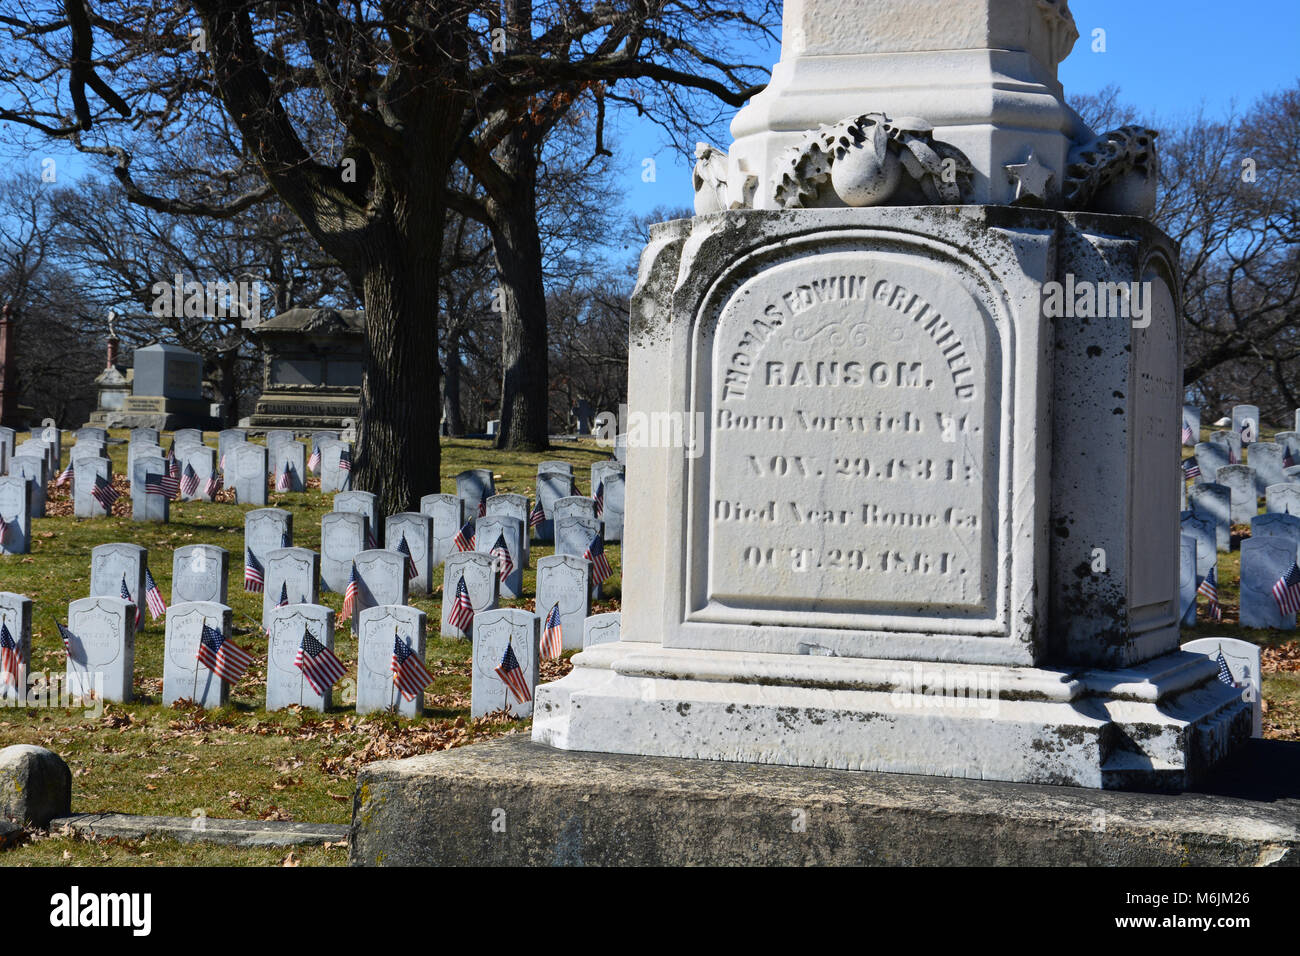 Obelisk memorializing Civil War General Thomas Edwin Greenfield Ransom of the Illinois infantry at the Rosehill - Stock Image